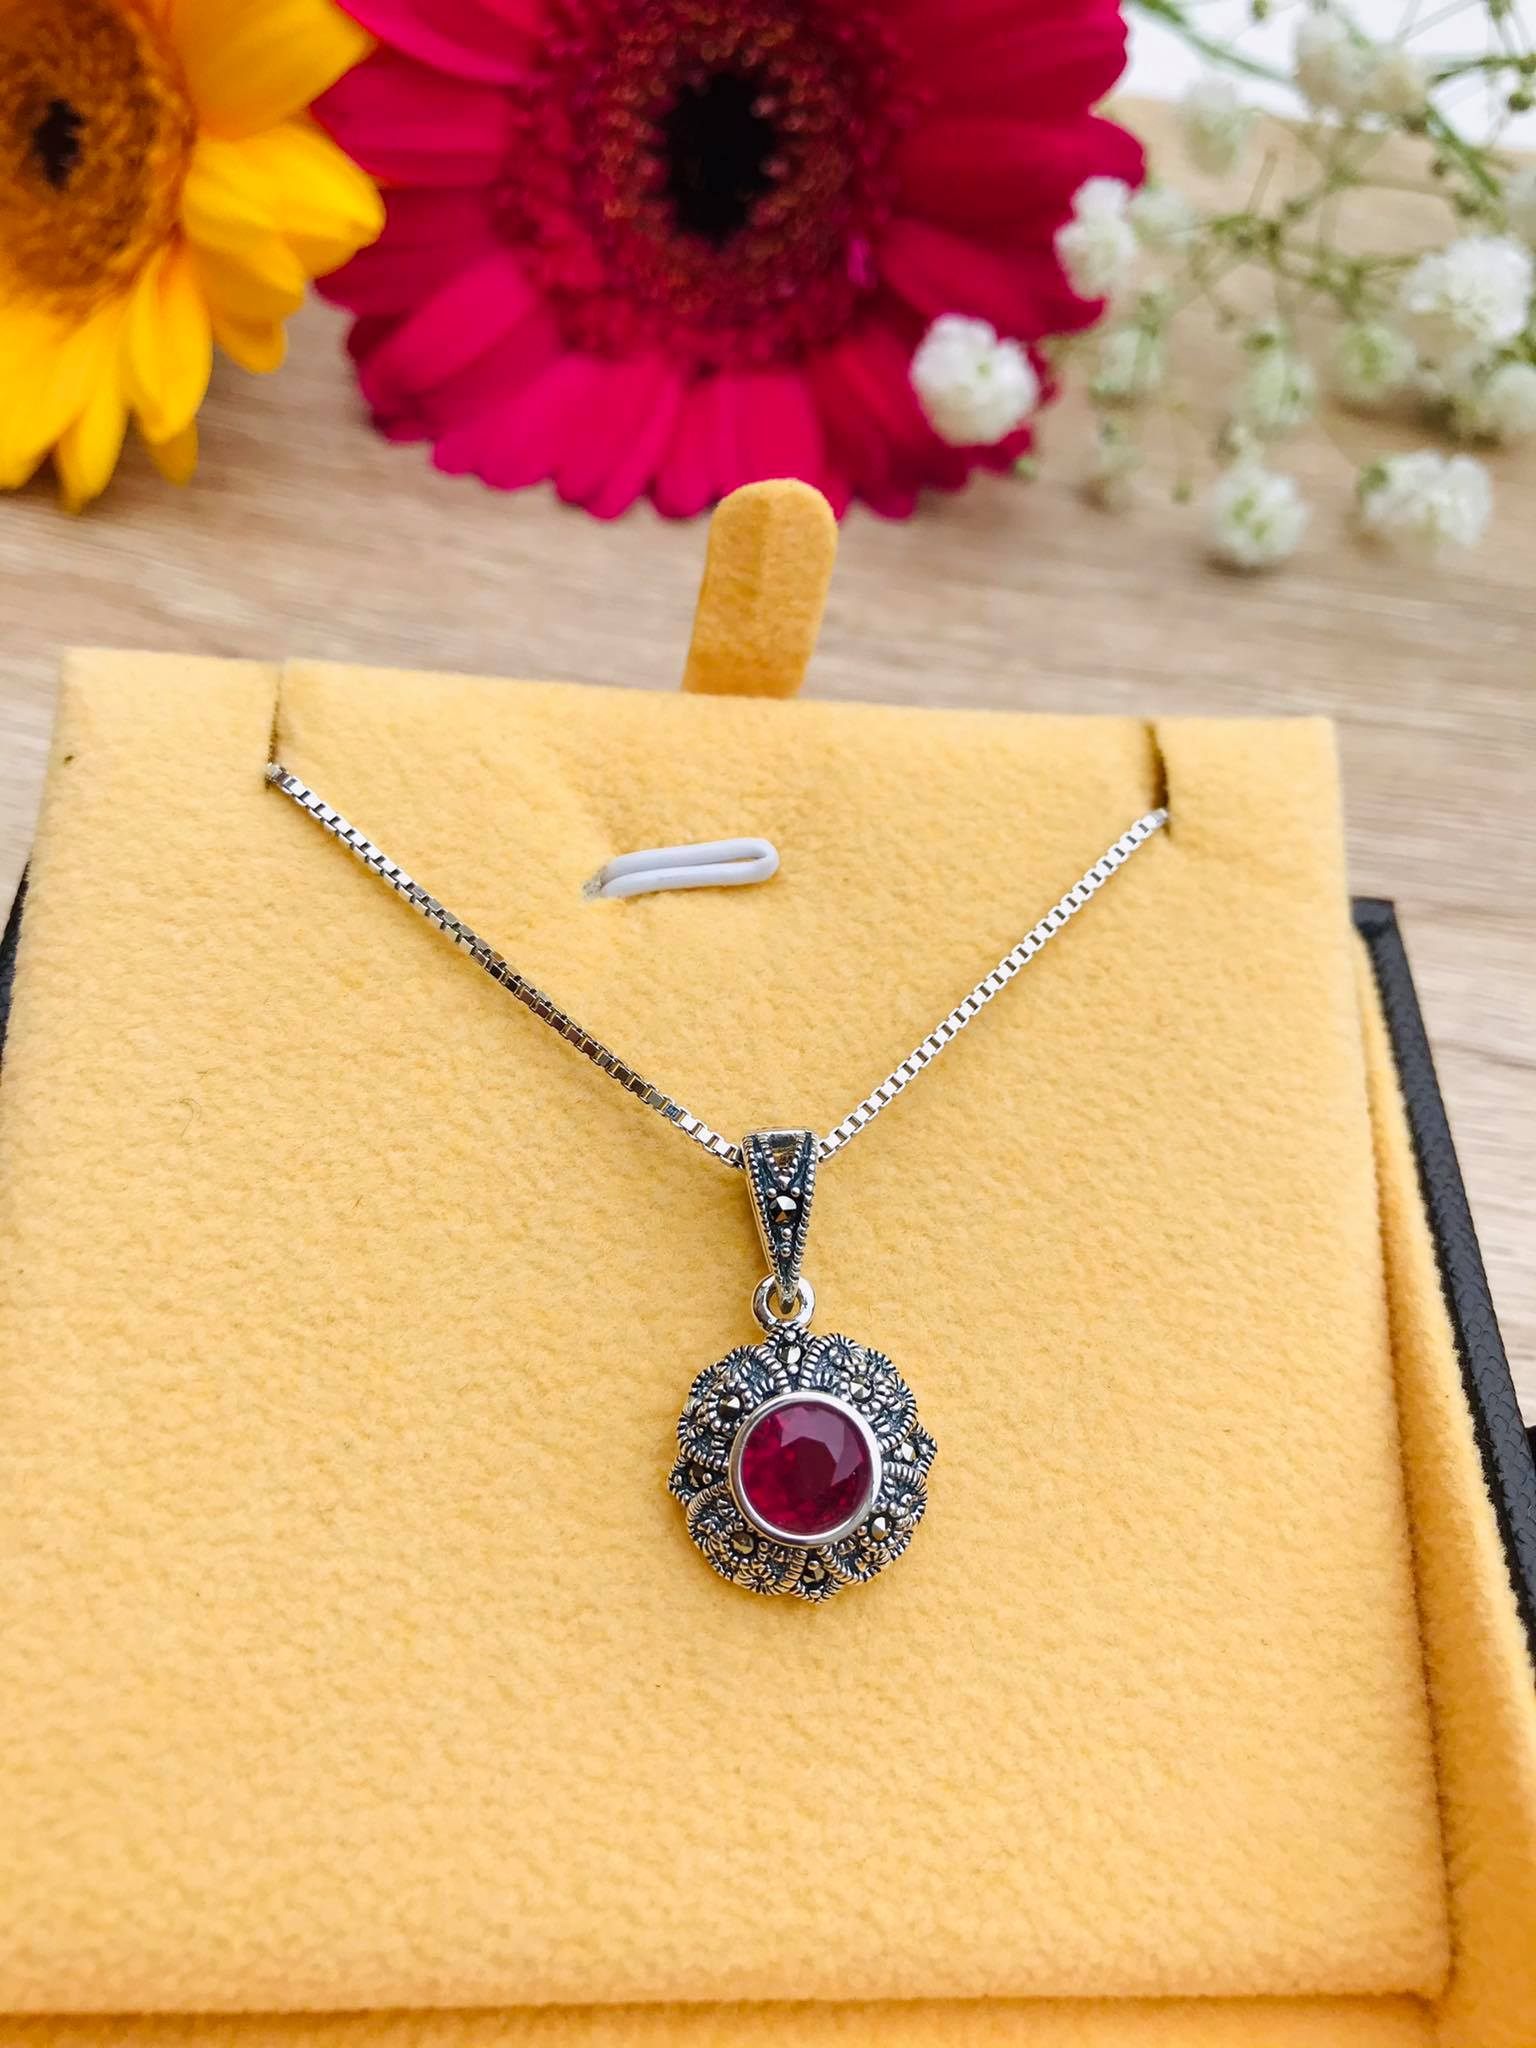 Brilliant roundcut Burmese Ruby with Sparkling Marcasite SilverNecklace Image